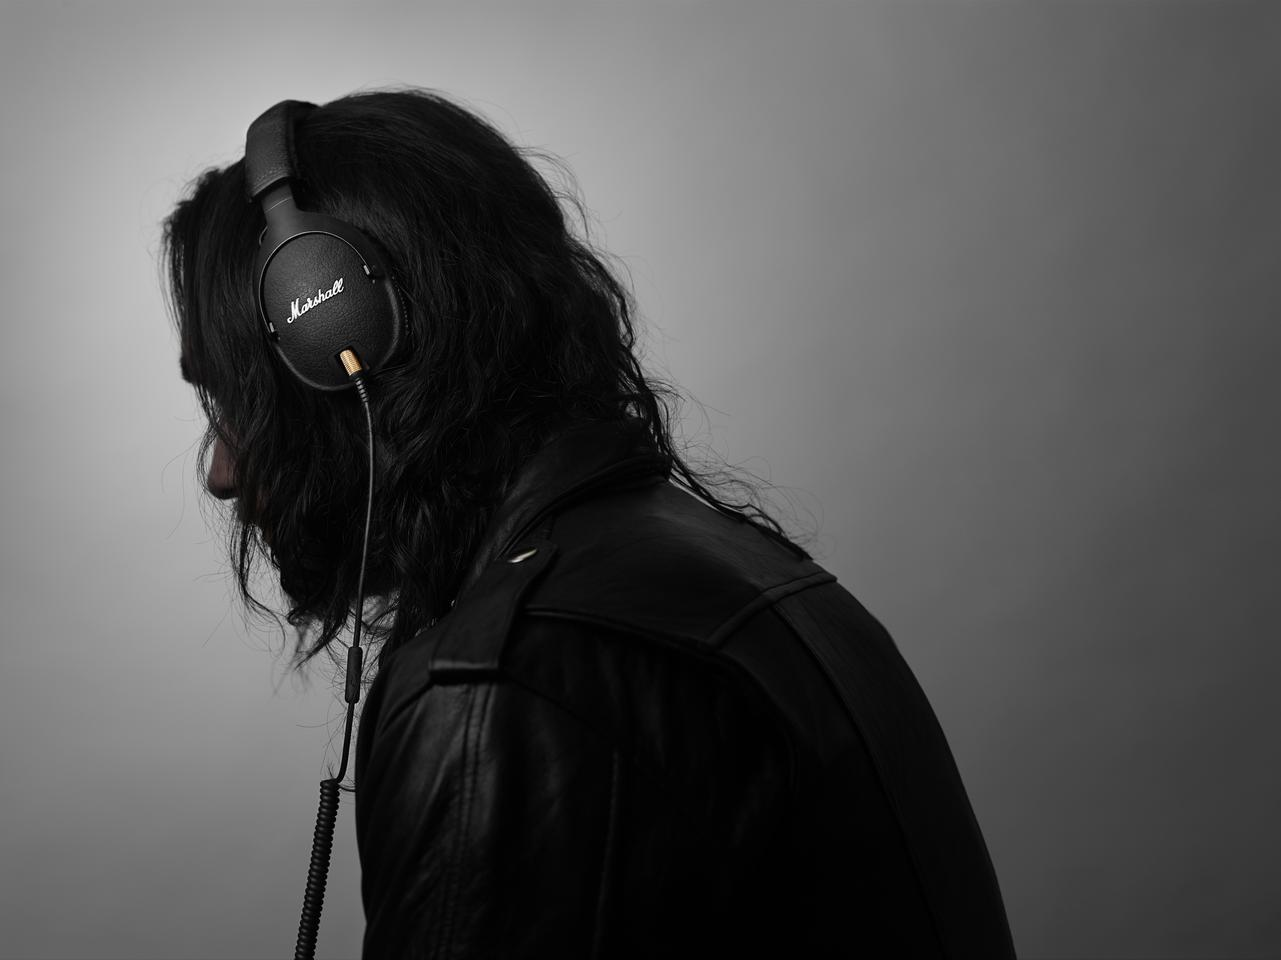 Marshall Headphones has announced the release of its first over-ear model, the Marshall Monitor